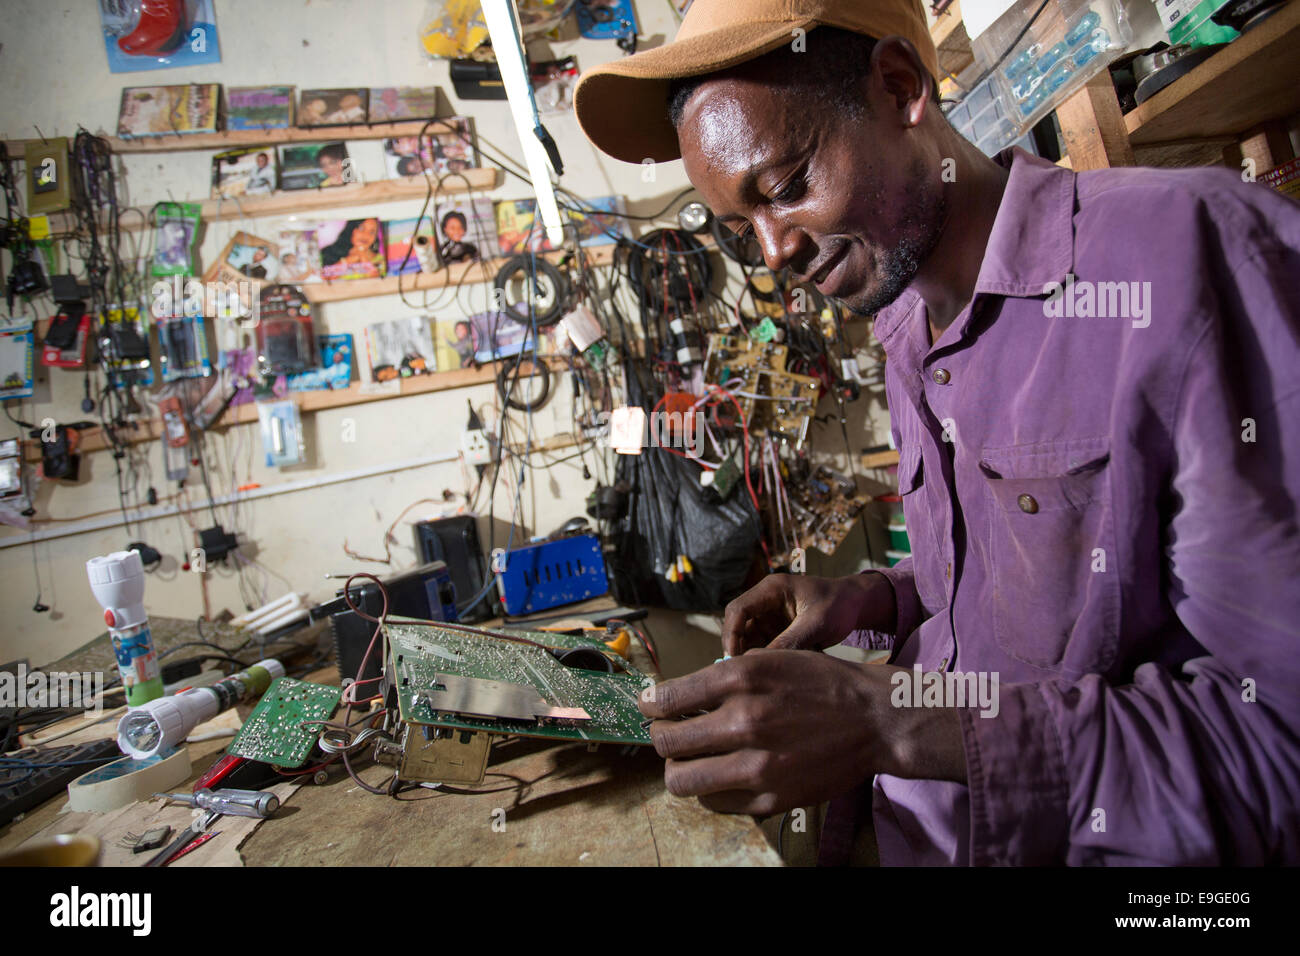 Electrical repair shop in Masama village on the foothills of Mt. Kilimanjaro, Tanzania. - Stock Image